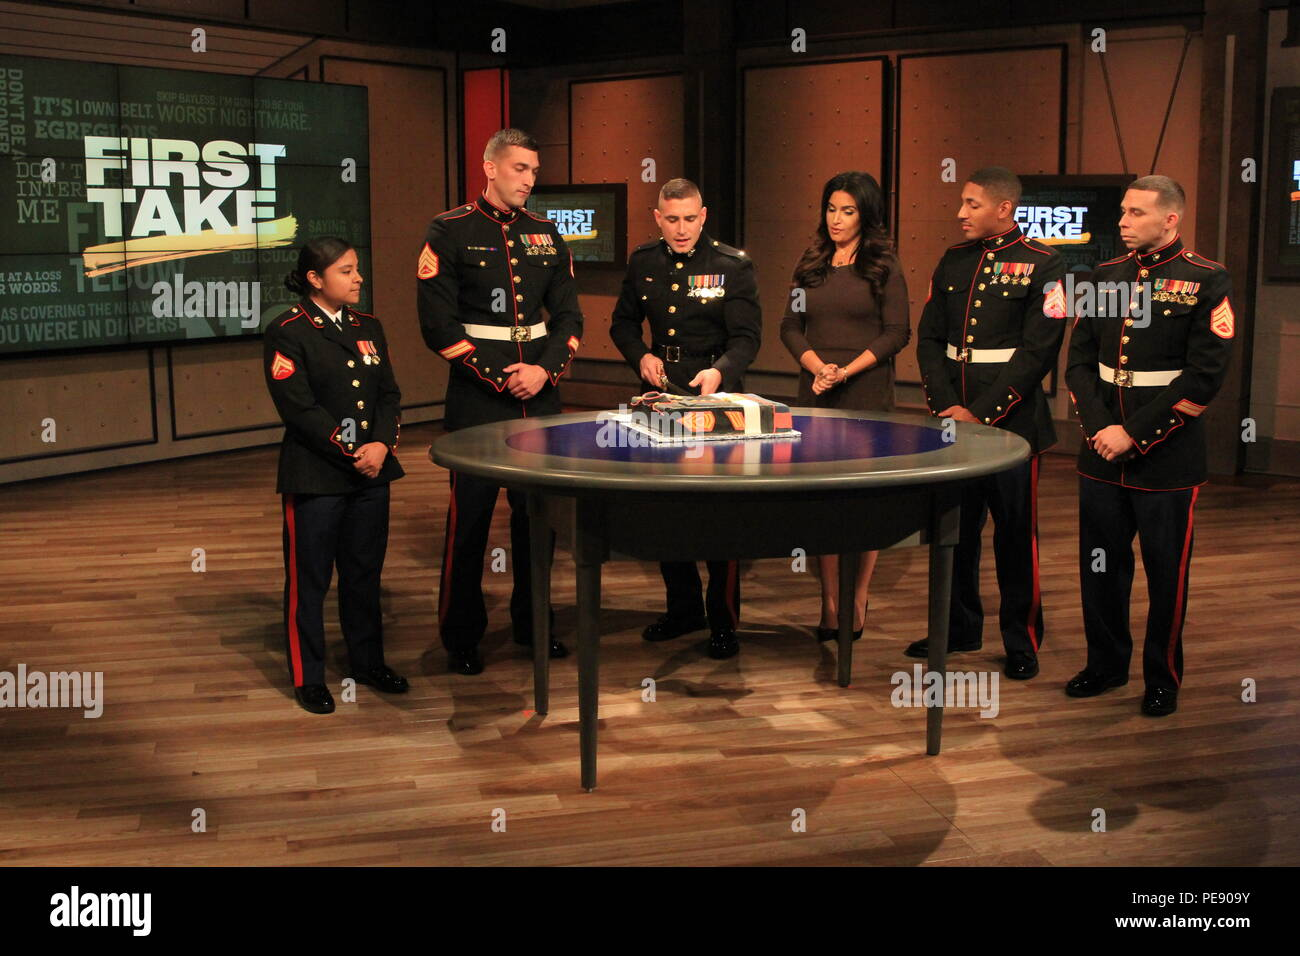 1st Lt. Stefan Milan, center left, explains the Marine Corps Birthday Cake Cutting Ceremony on ESPN First Take to Molly Qerim, Nov. 5. The Marines, all from Marine Recruiting Station Springfield, 1st Marine Corps District, appeared on the show in light of the Marine Corps' 240th birthday taking place on Nov. 10. - Stock Image